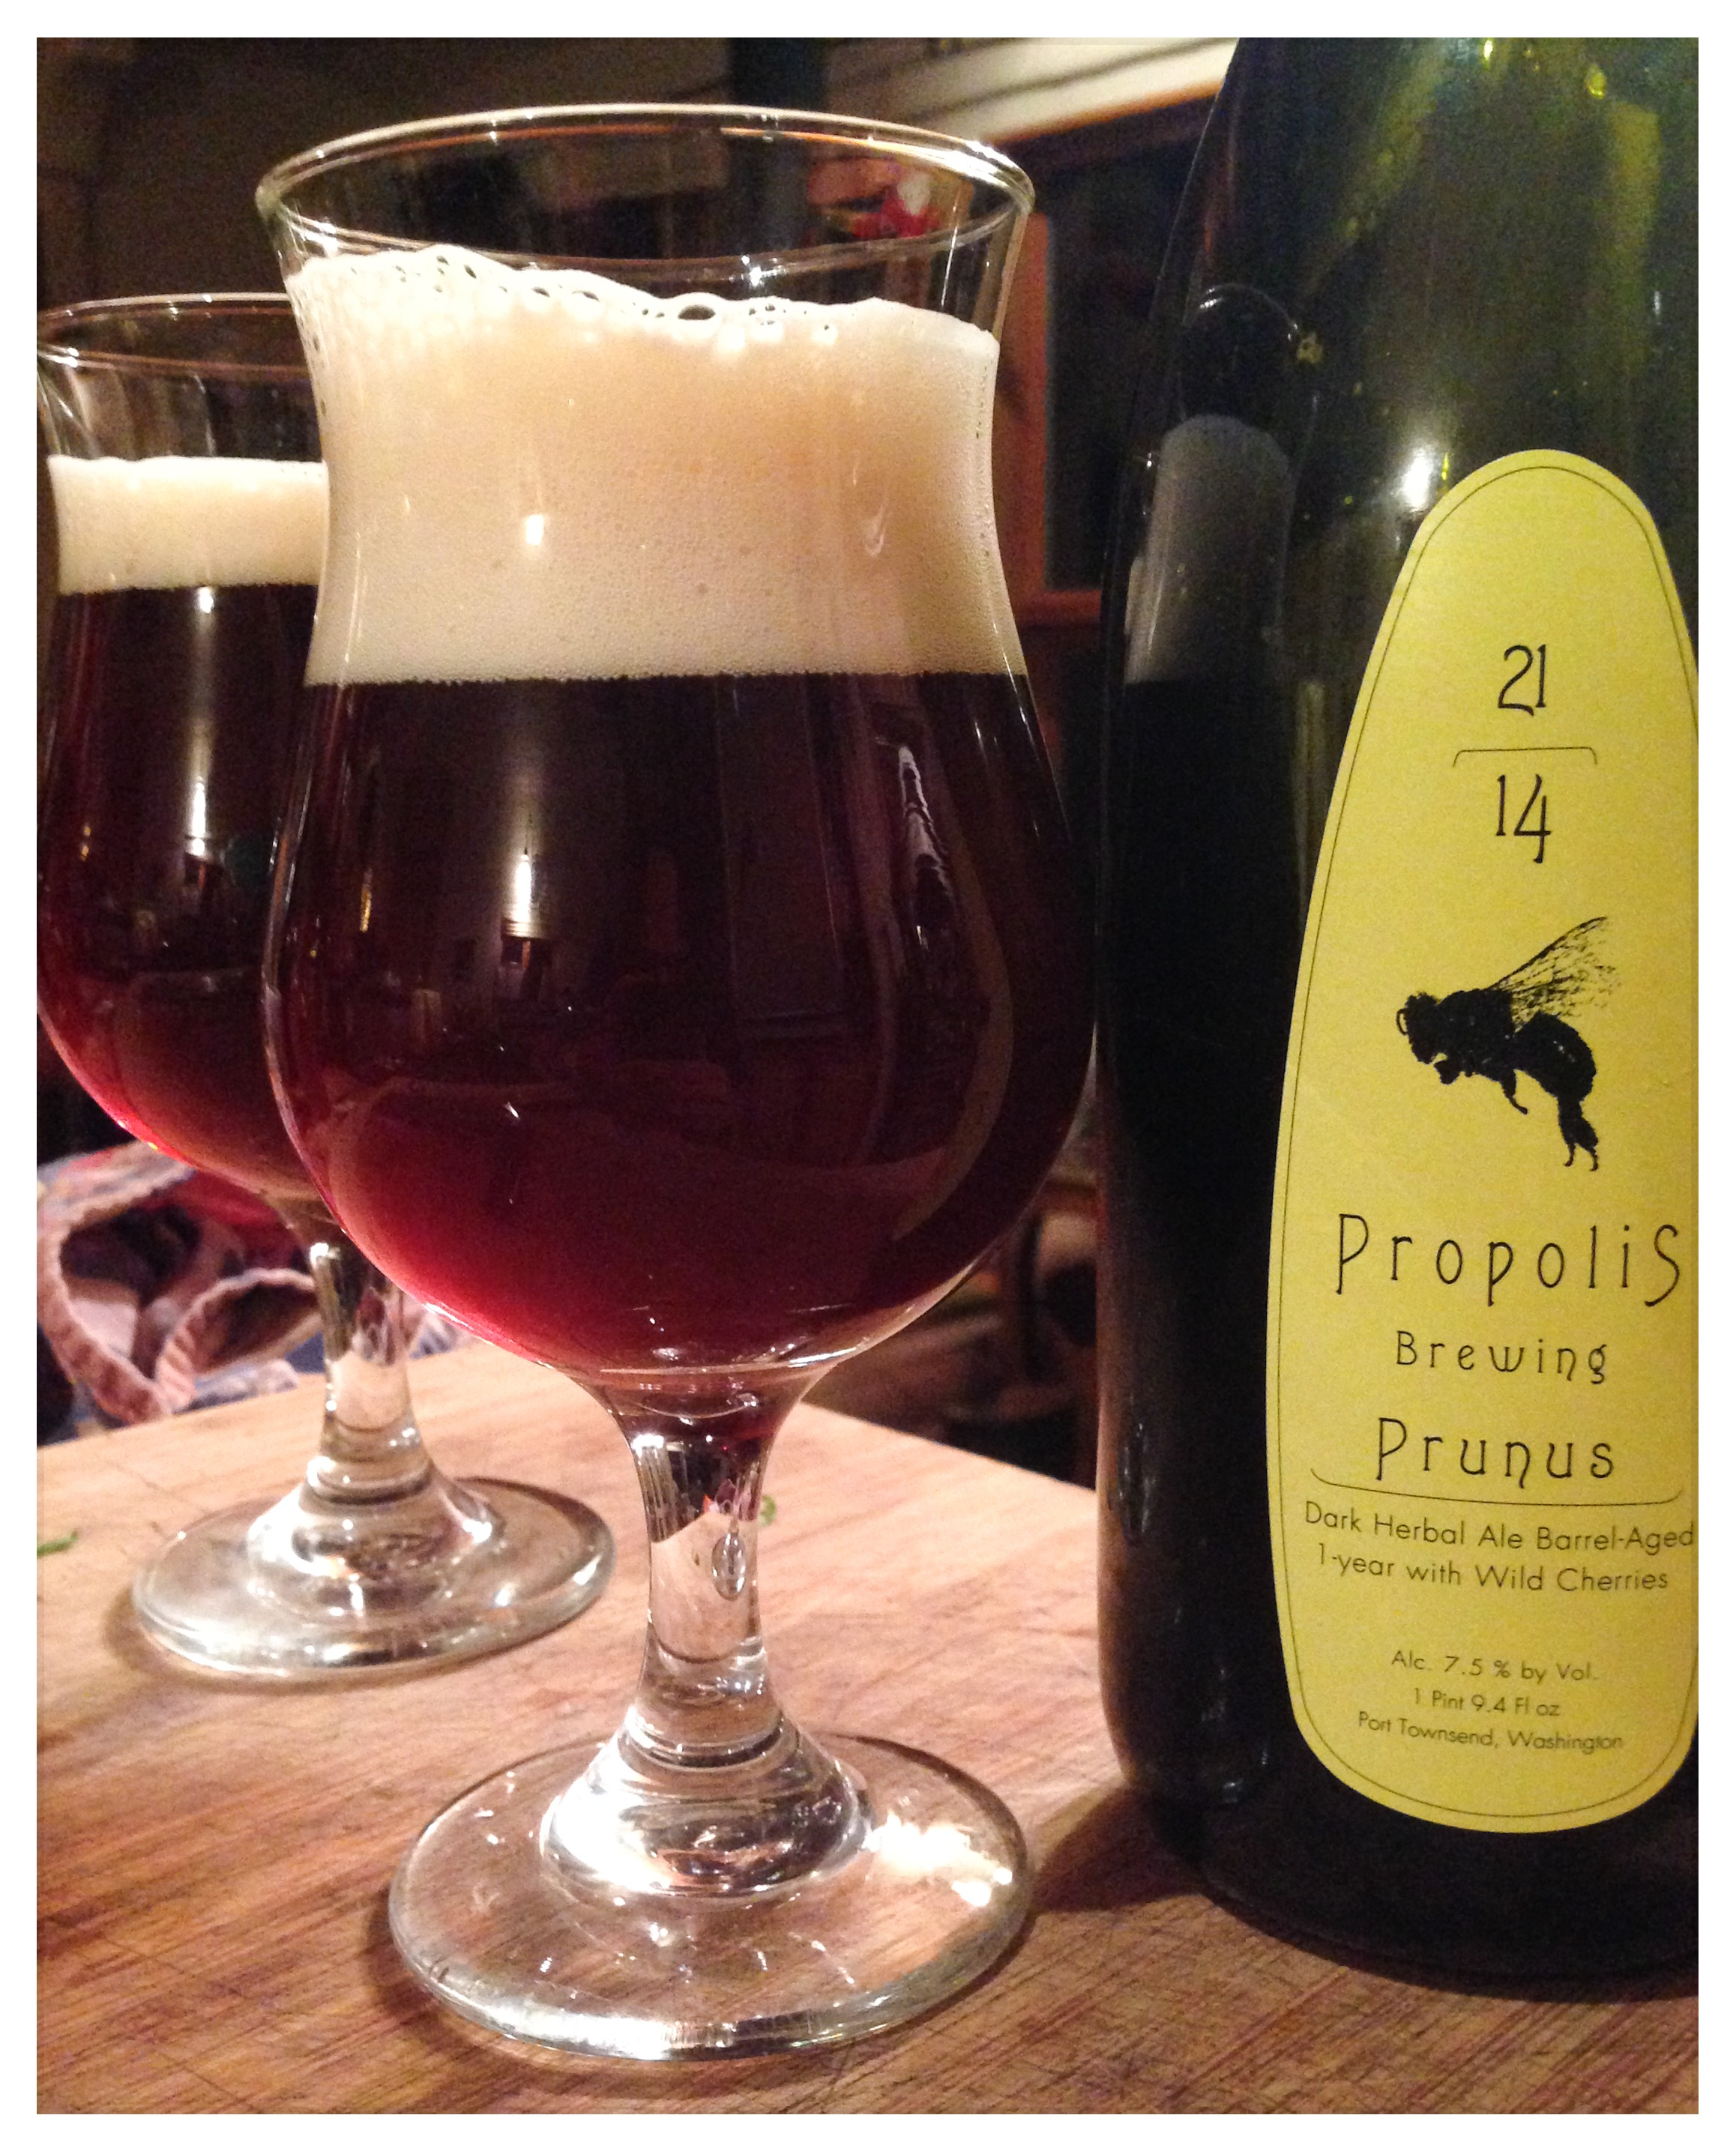 Prunus ale from Propolis Brewing at Ballard Farmers Market. Courtesy Propolis Brewing.